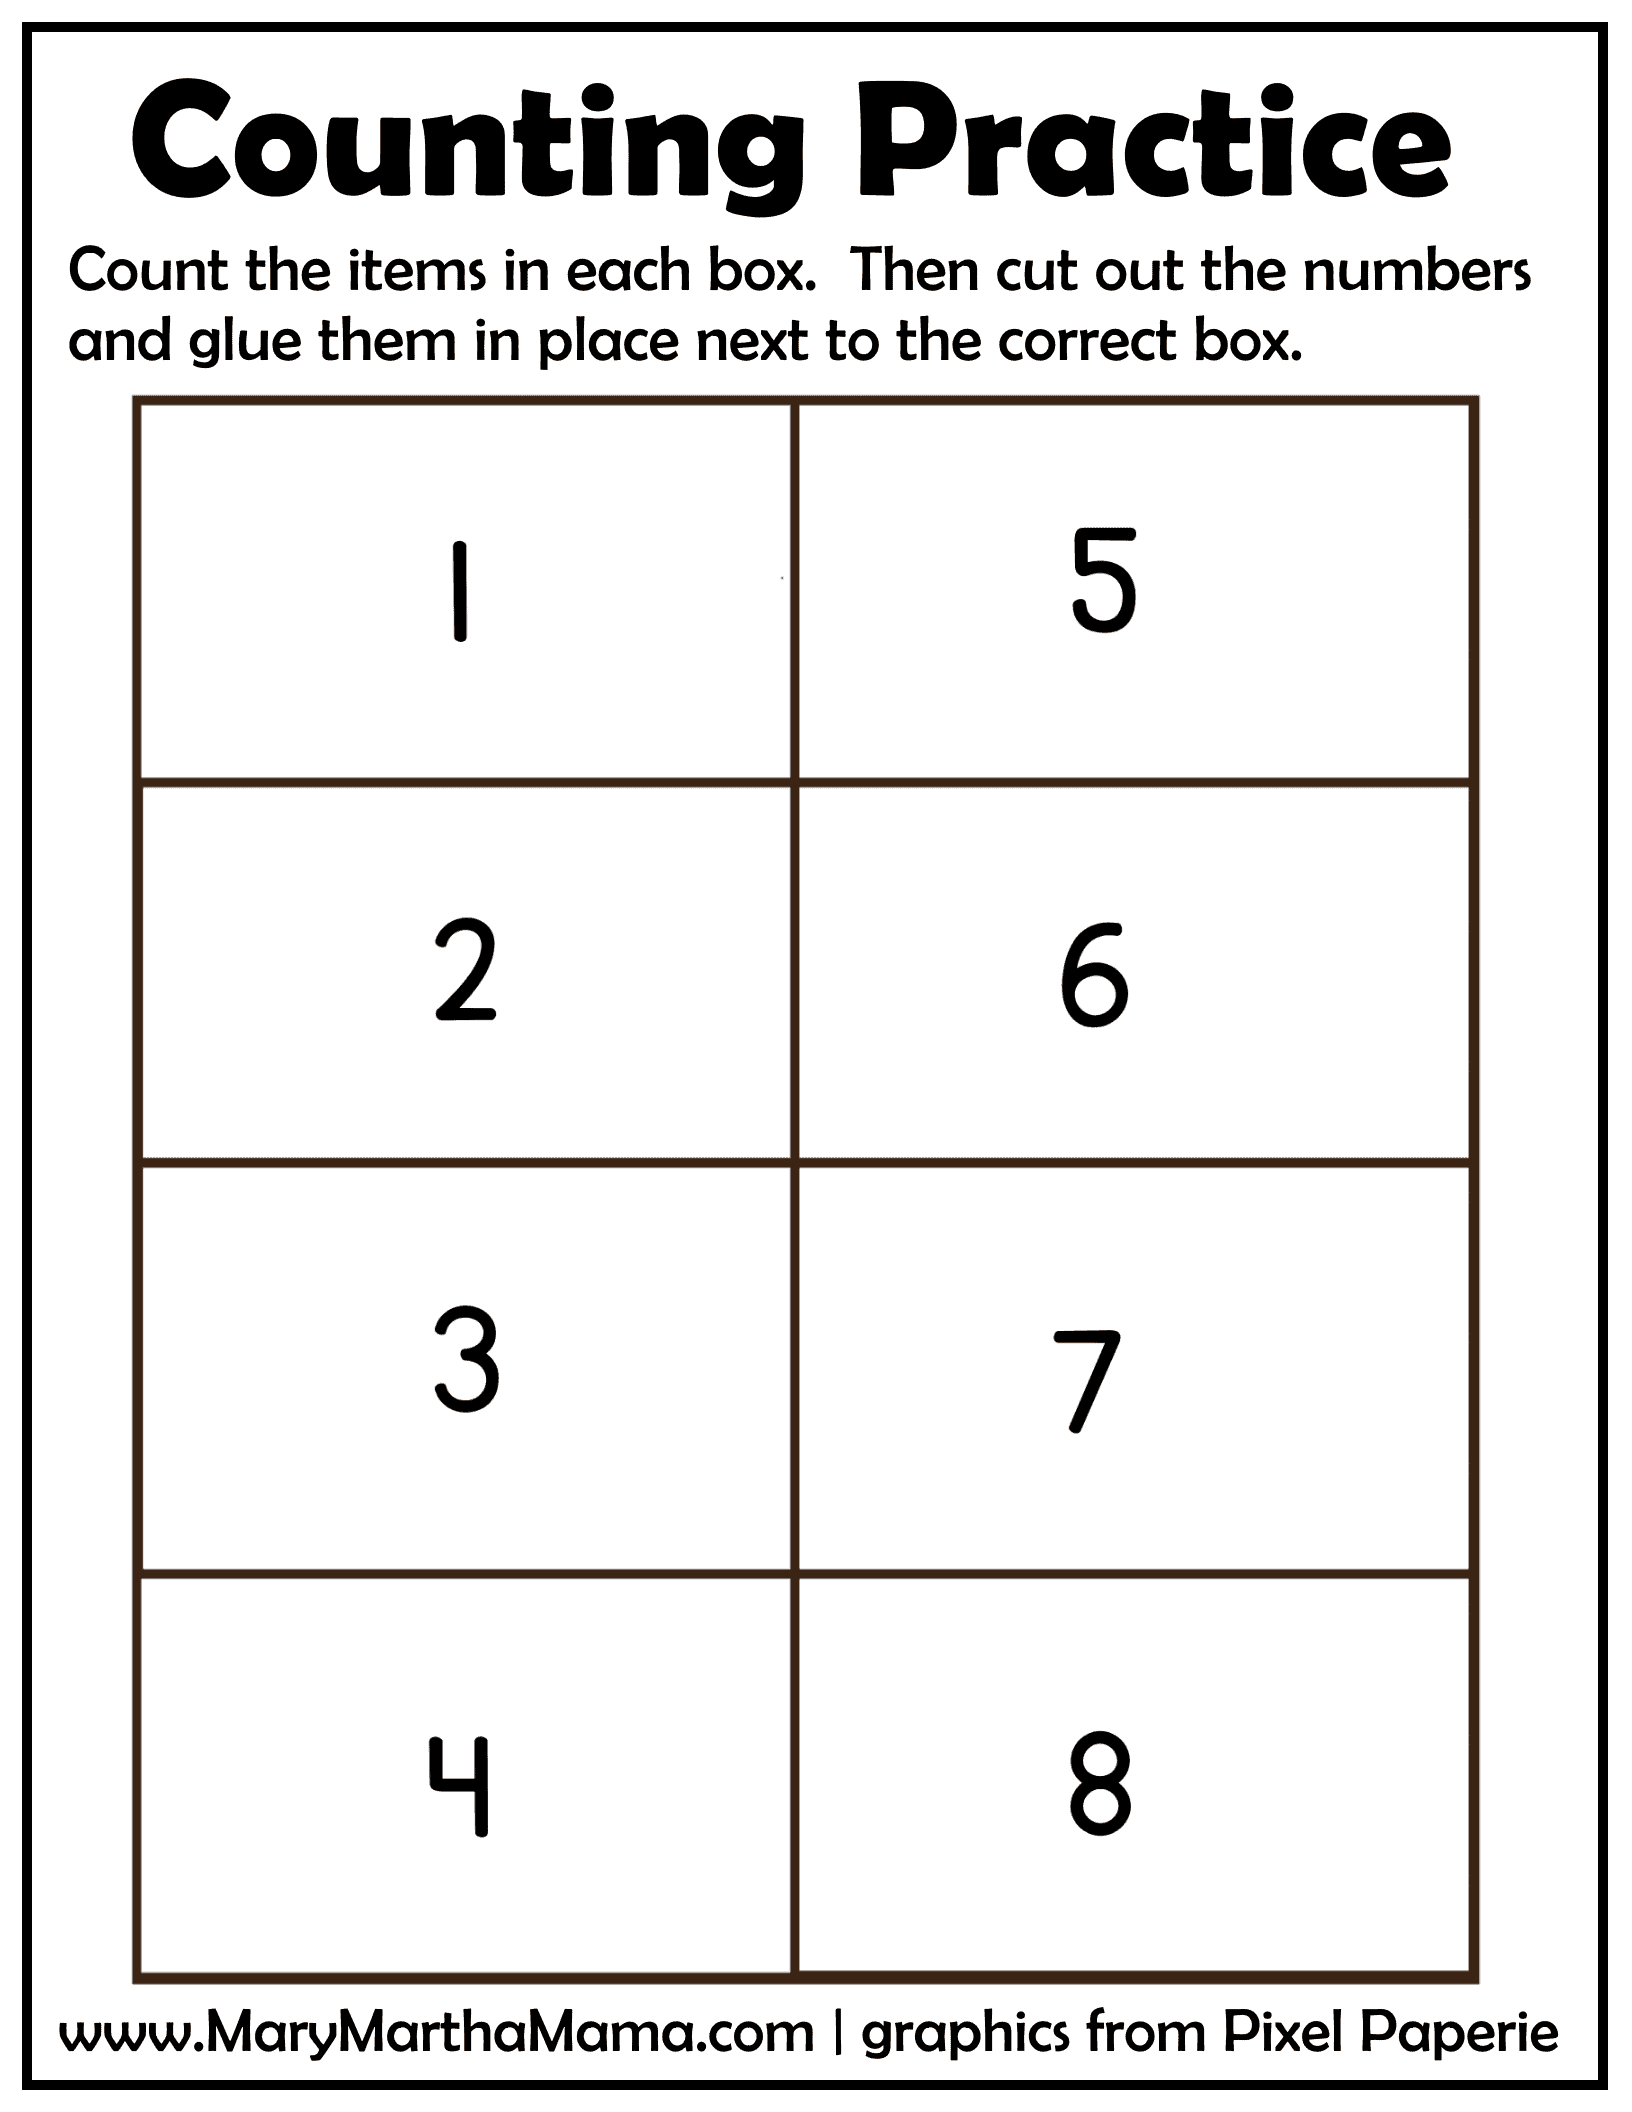 creation counting practice page 2